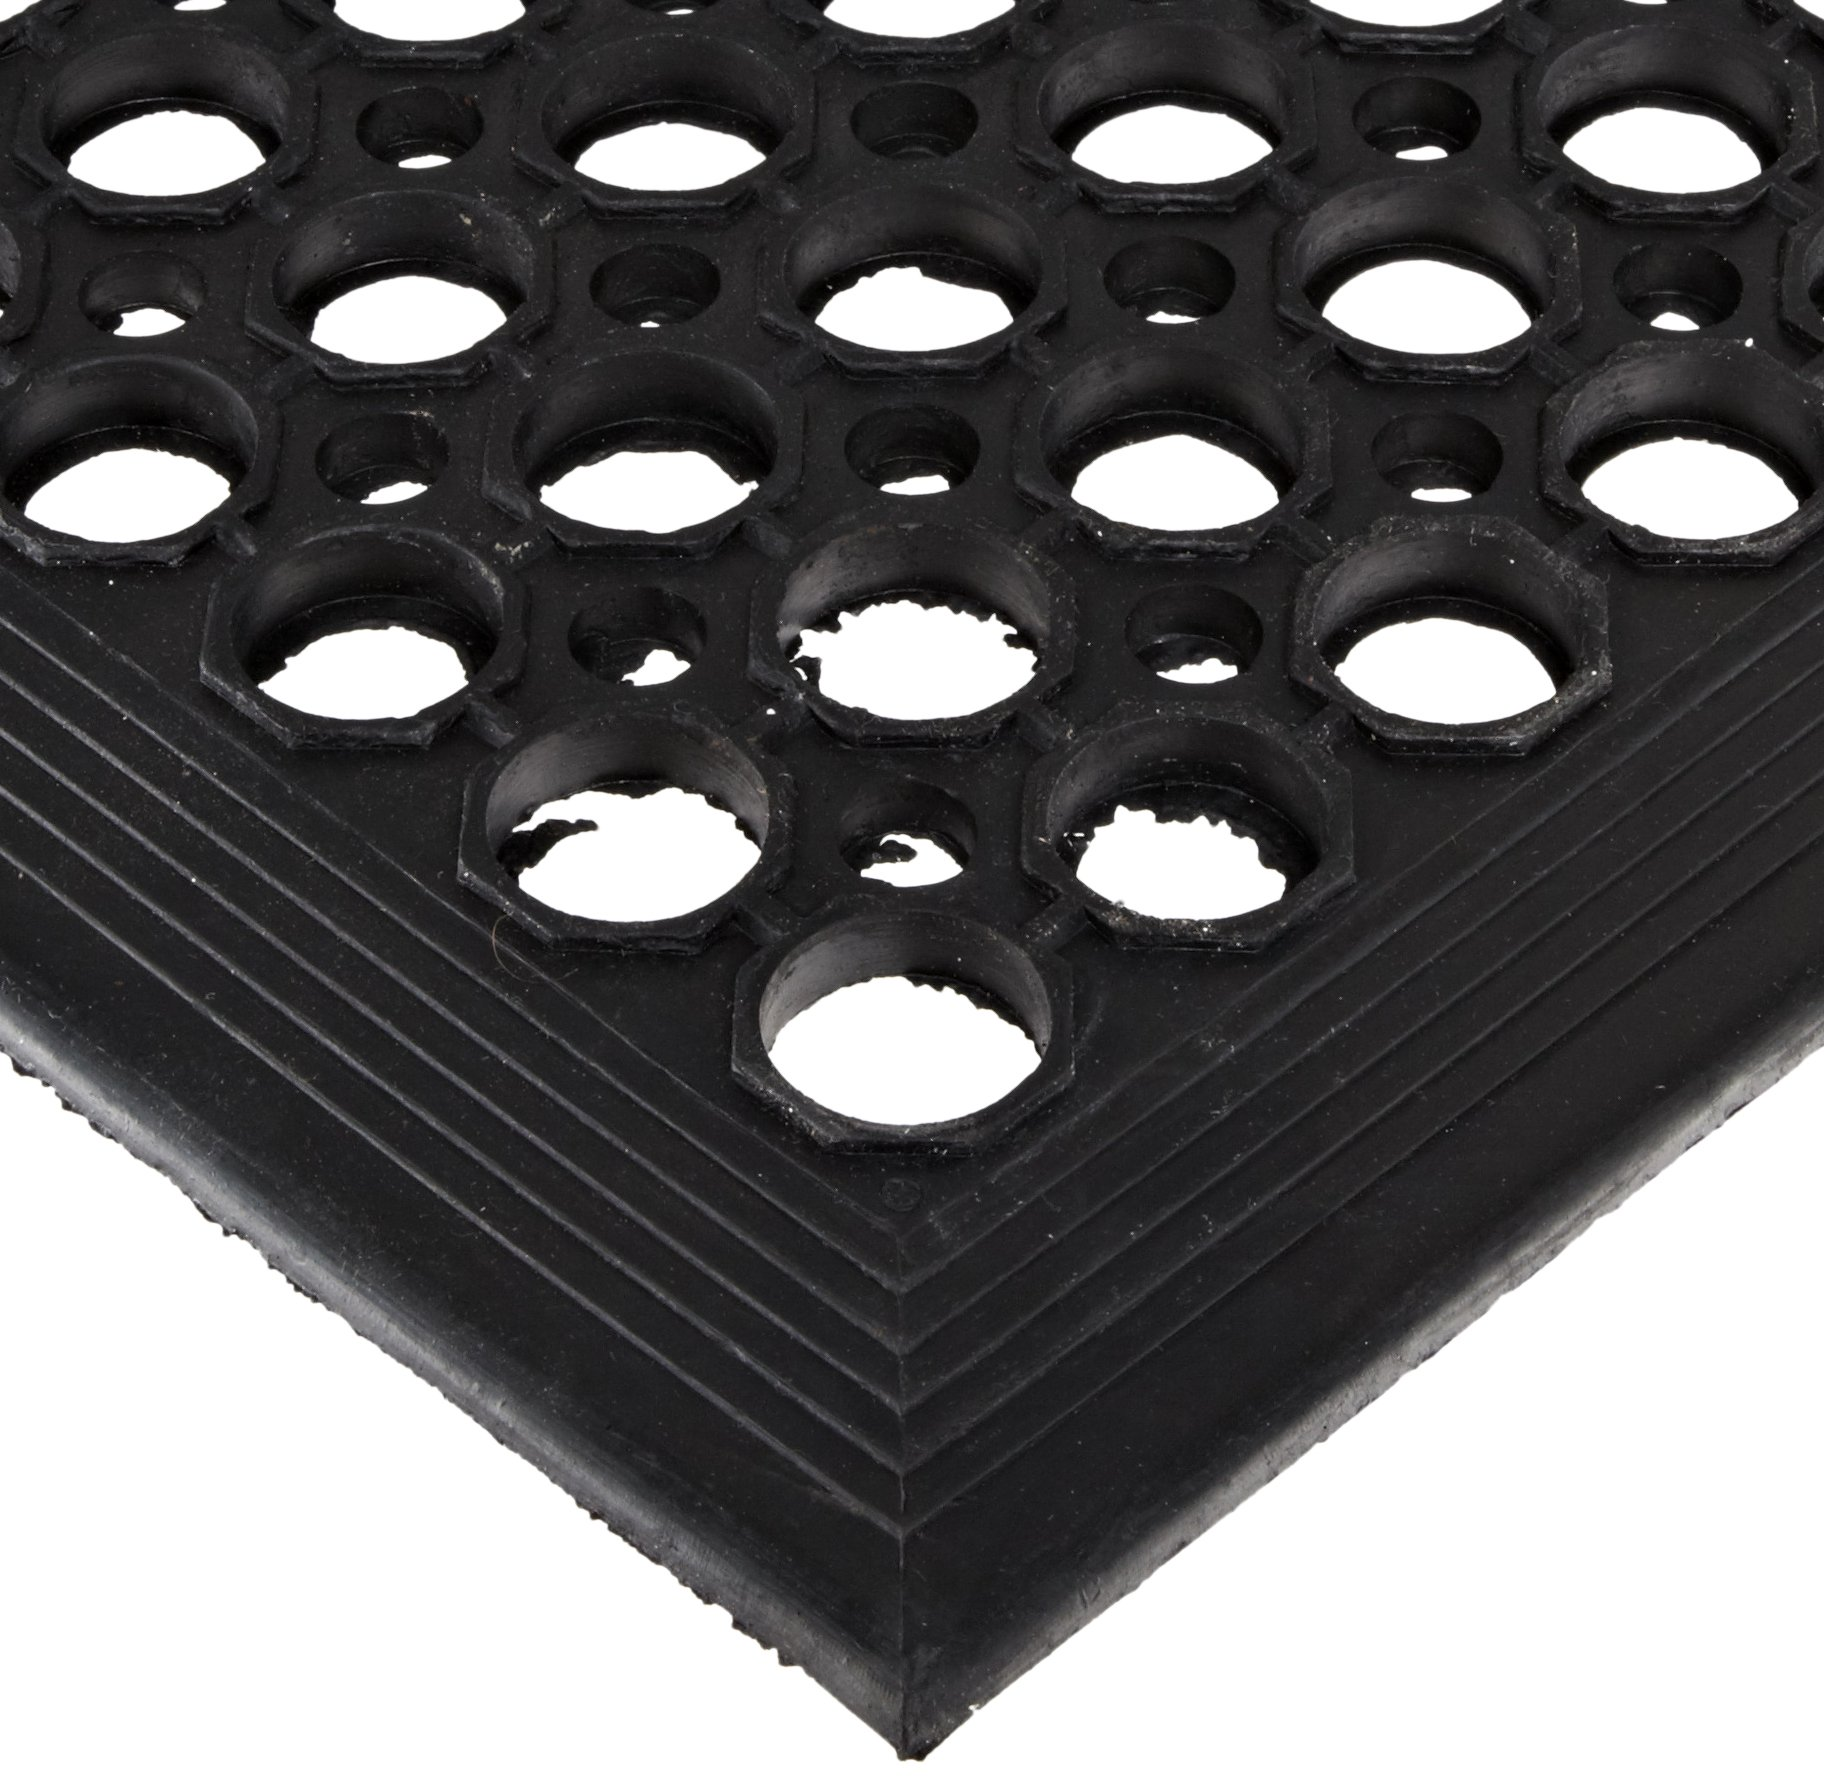 NoTrax 504 General-Purpose Rubber Beveled Drain-Step Anti-Fatigue/Anti-Slip Floor Mat, for Wet Areas, 3' Width x 5' Length x 1/2'' Thickness, Black